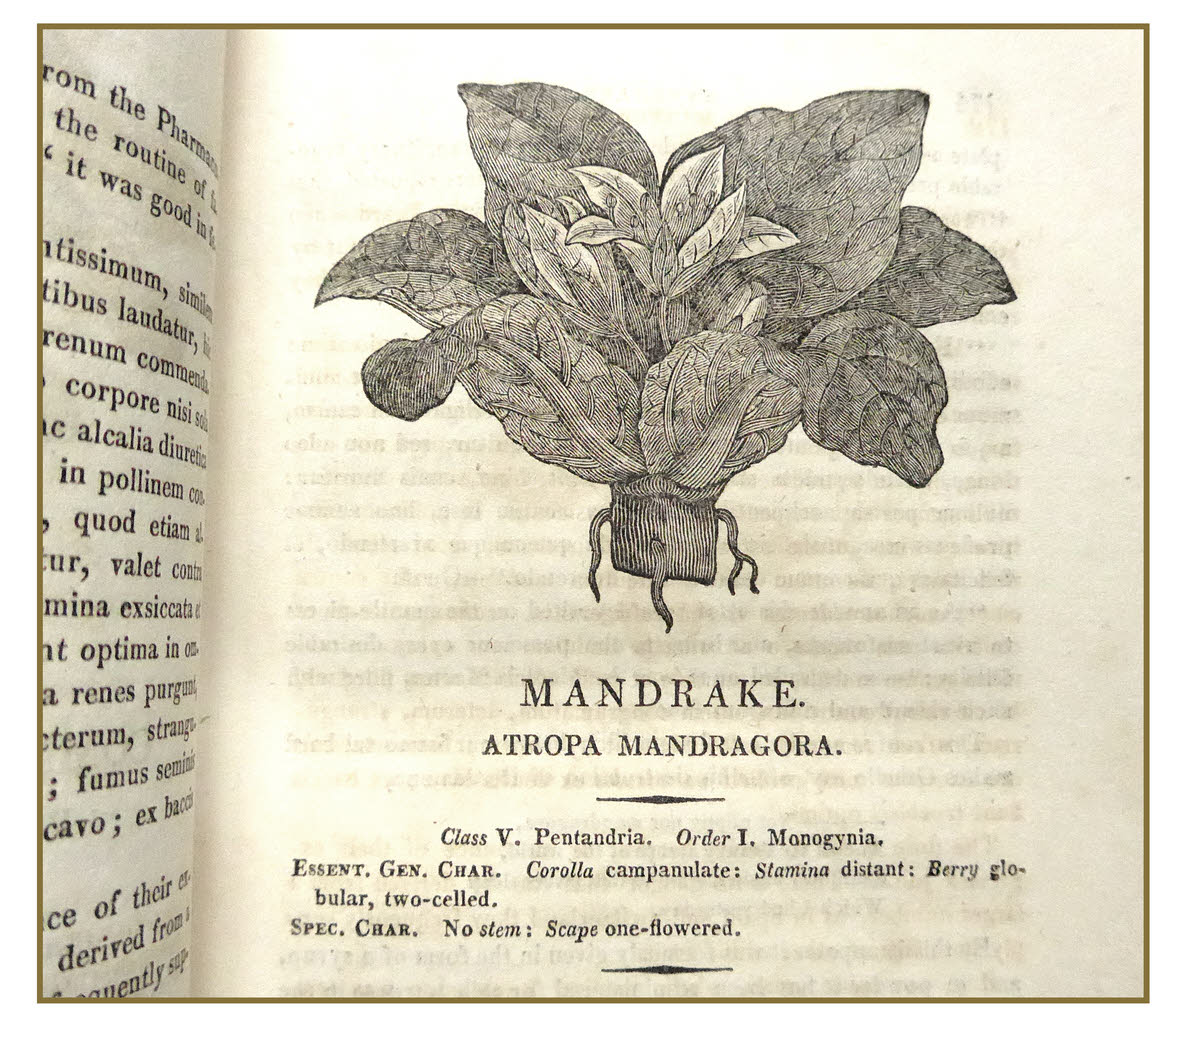 Illustration of mandrake by Bewick in Thornton's Herbal